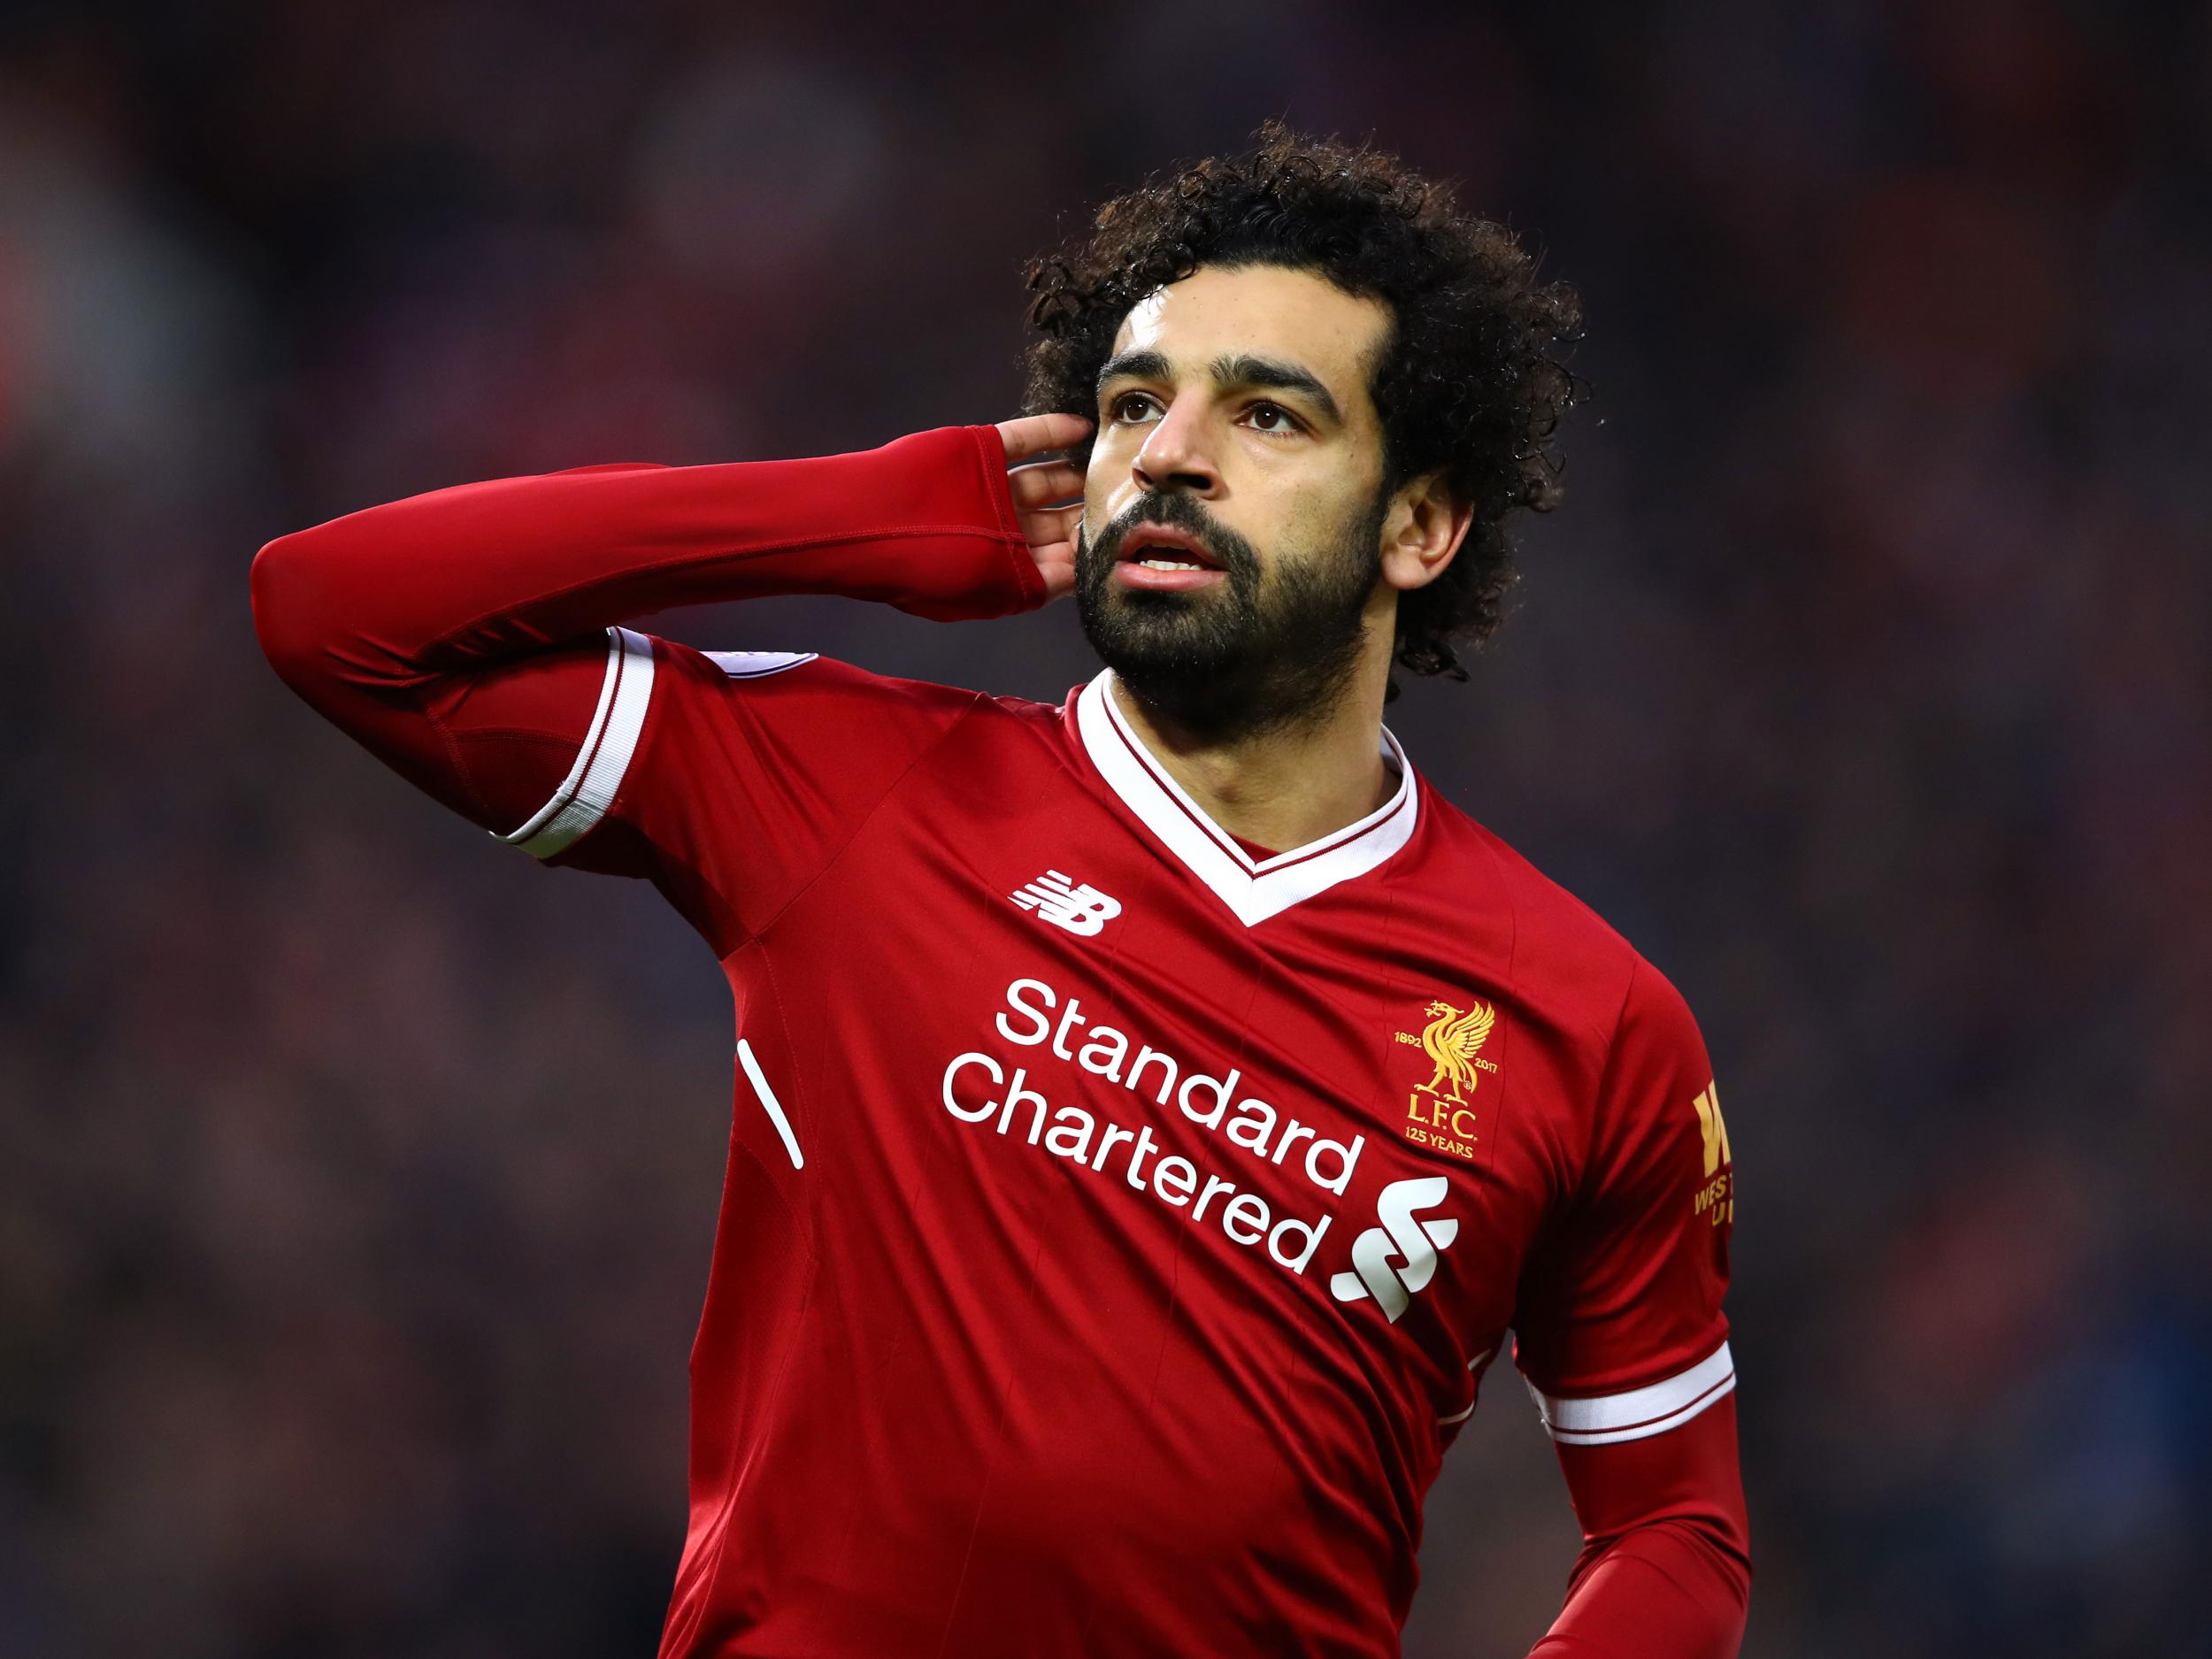 Liverpool's Mohamed Salah Is Putting In An Exceptional